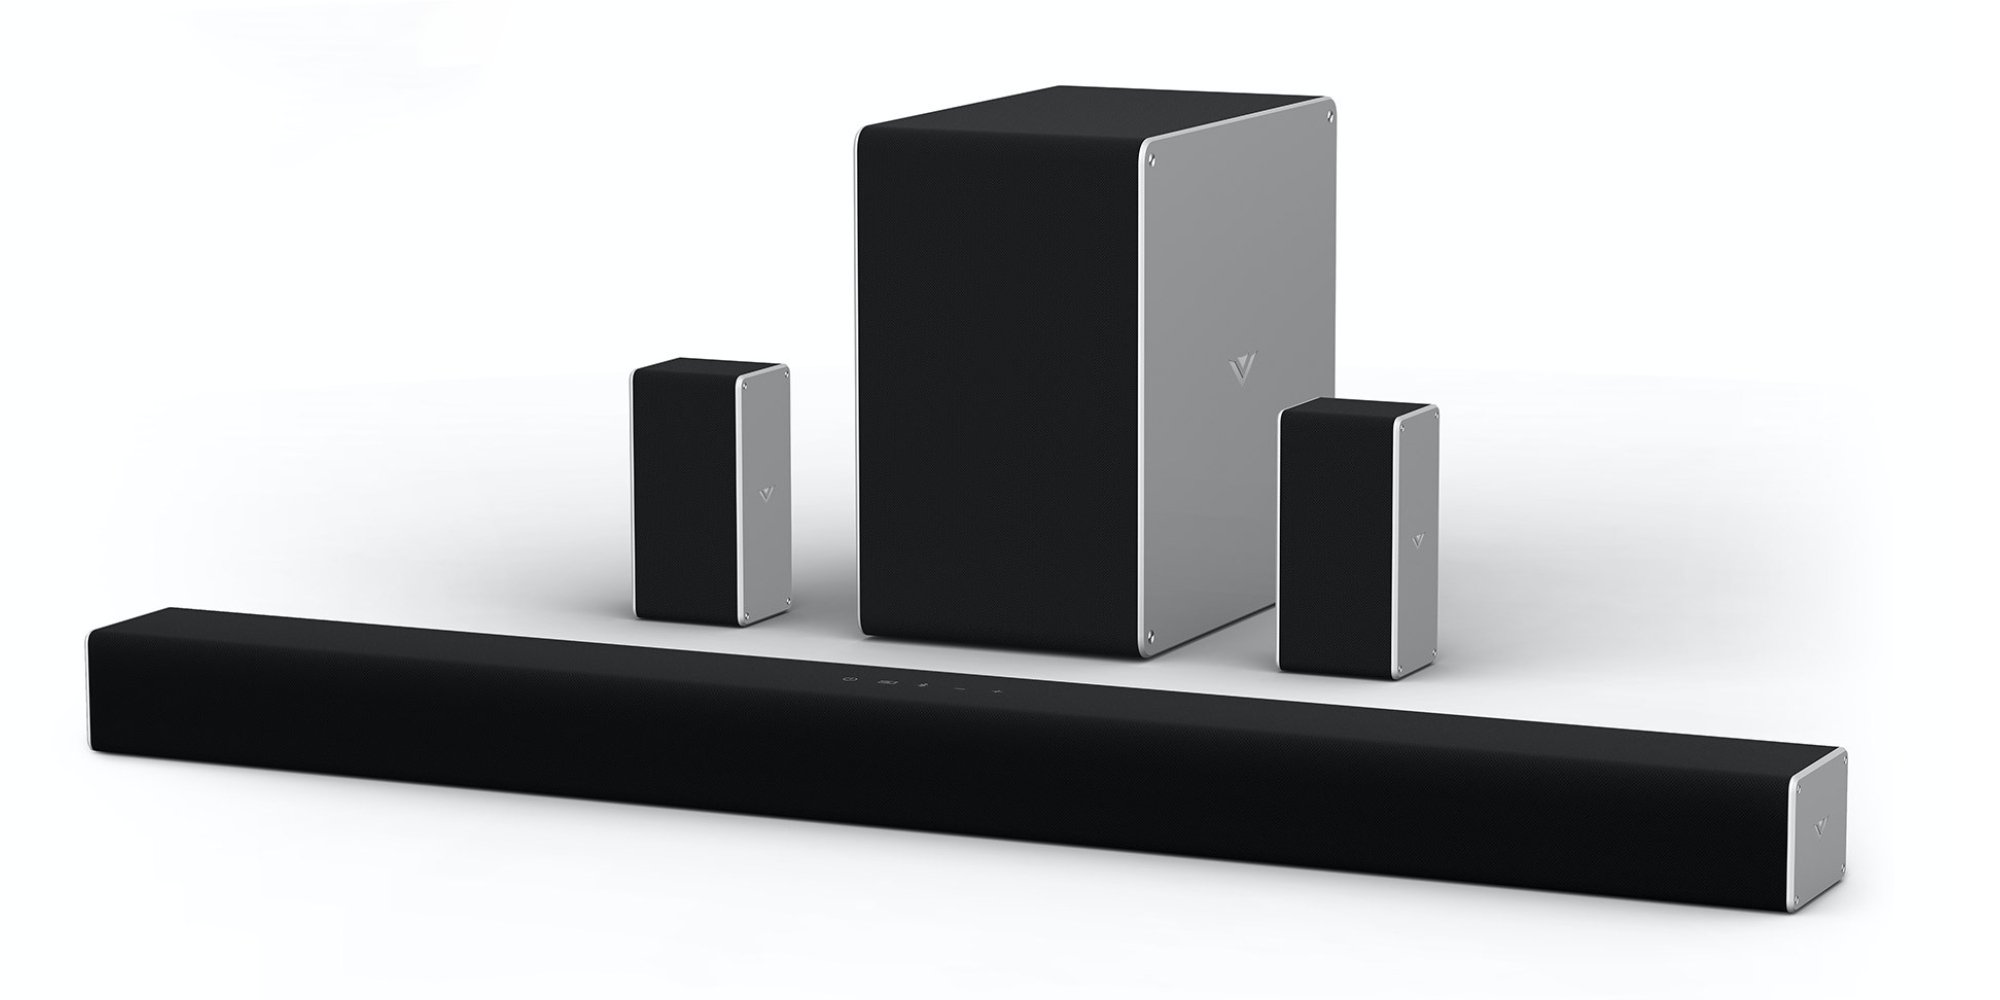 Enjoy Dolby Atmos audio with VIZIO's 36-inch Sound System for $230 (Save $270) - 9to5Toys